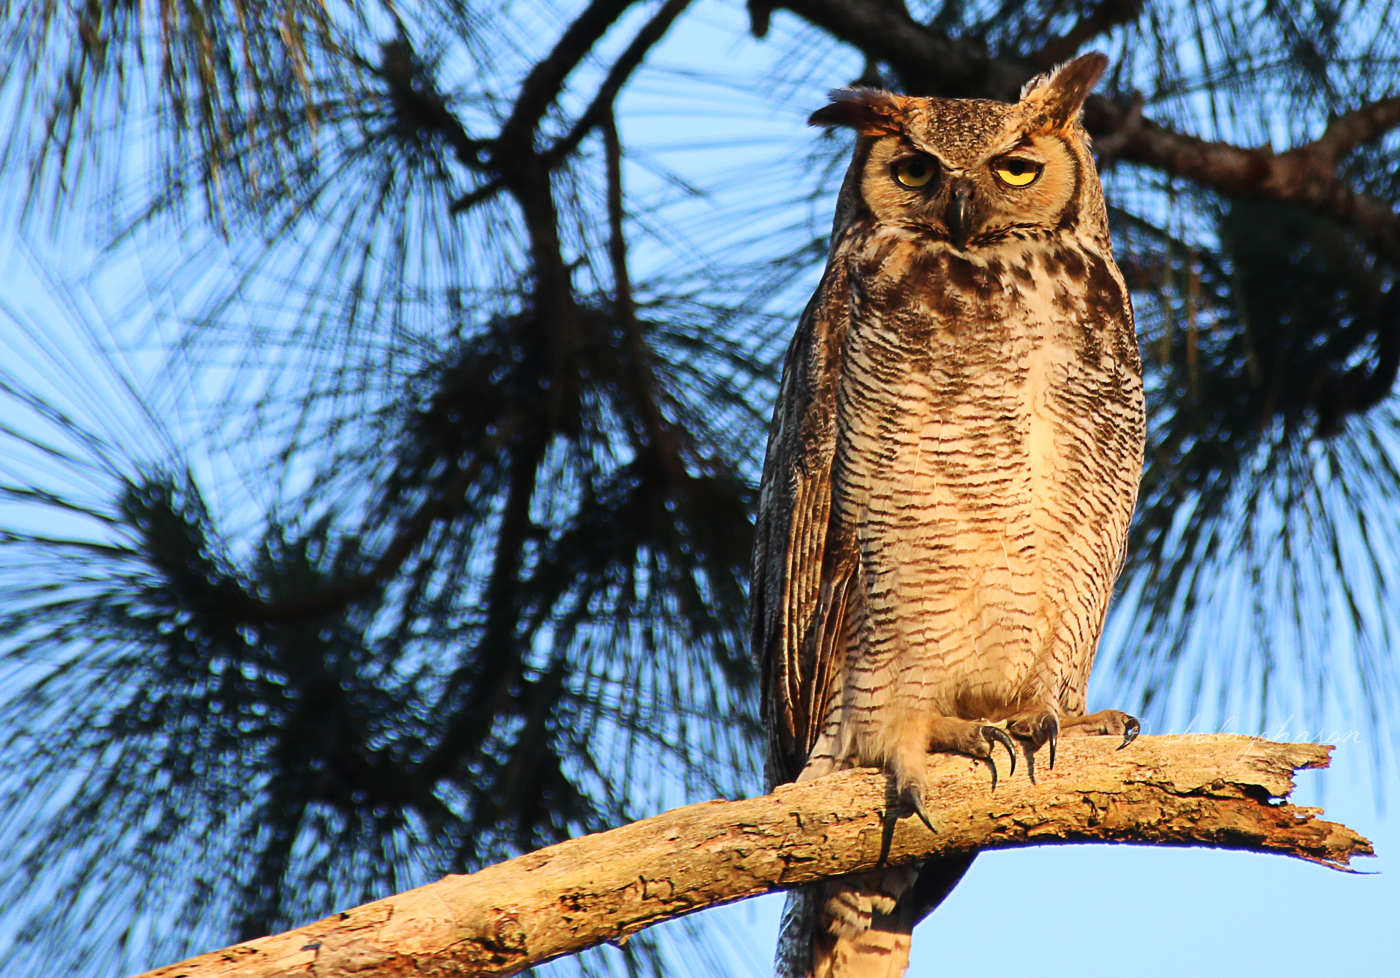 When I Think Of Owls, I Think Of Soft And Cuddly. This Horned Owl Dispels That Myth Easily With Those Gigantic (And Very Sharp) Claws.